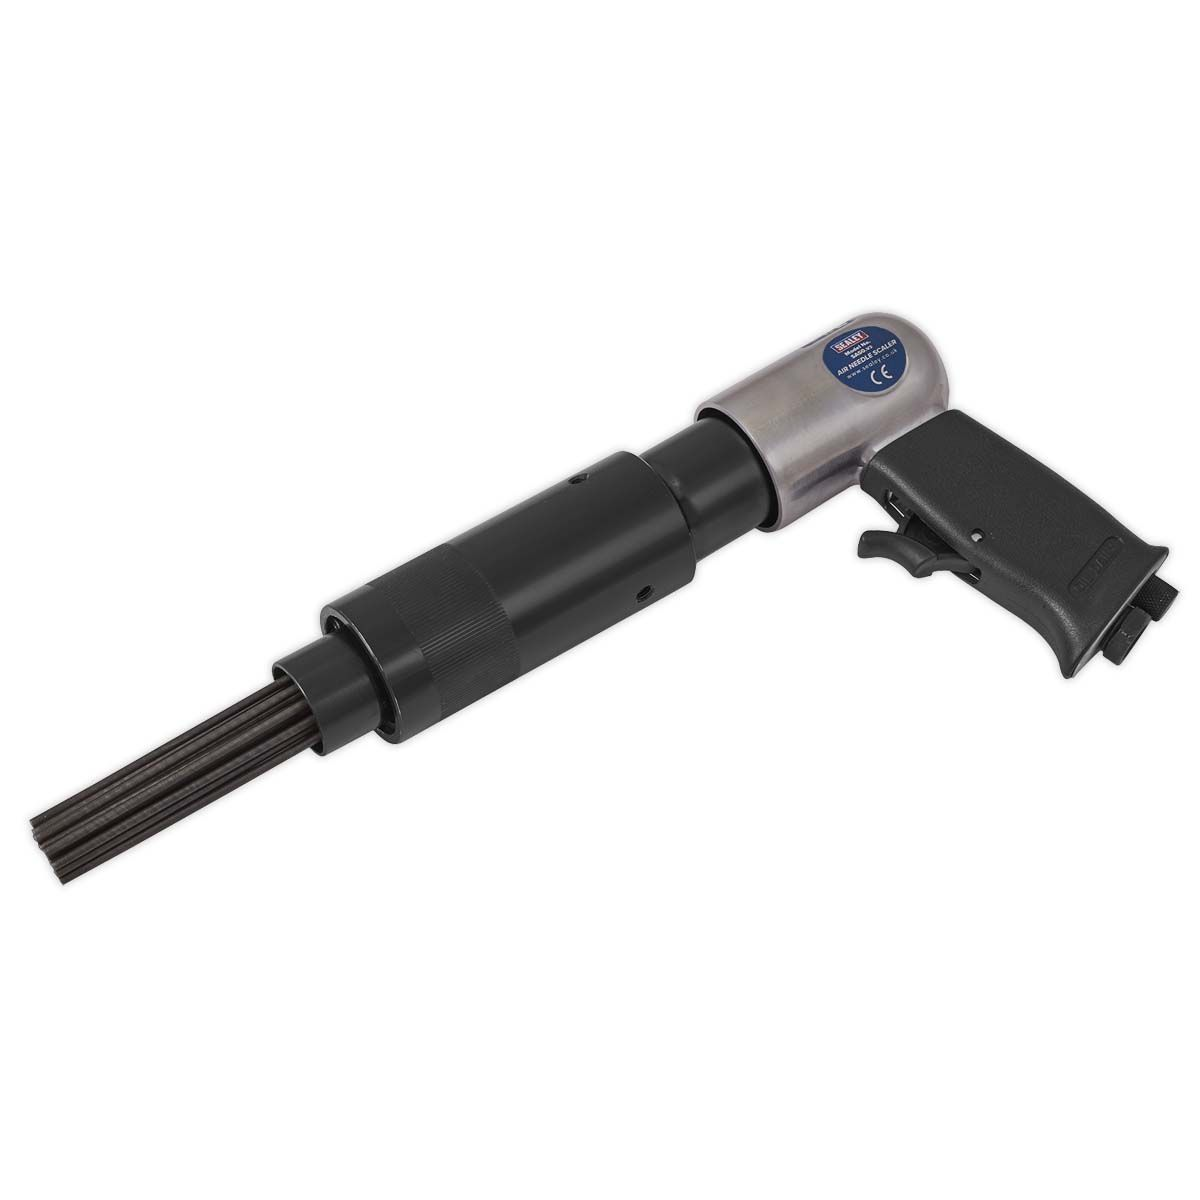 Sealey Air Needle Scaler - Pistol Type